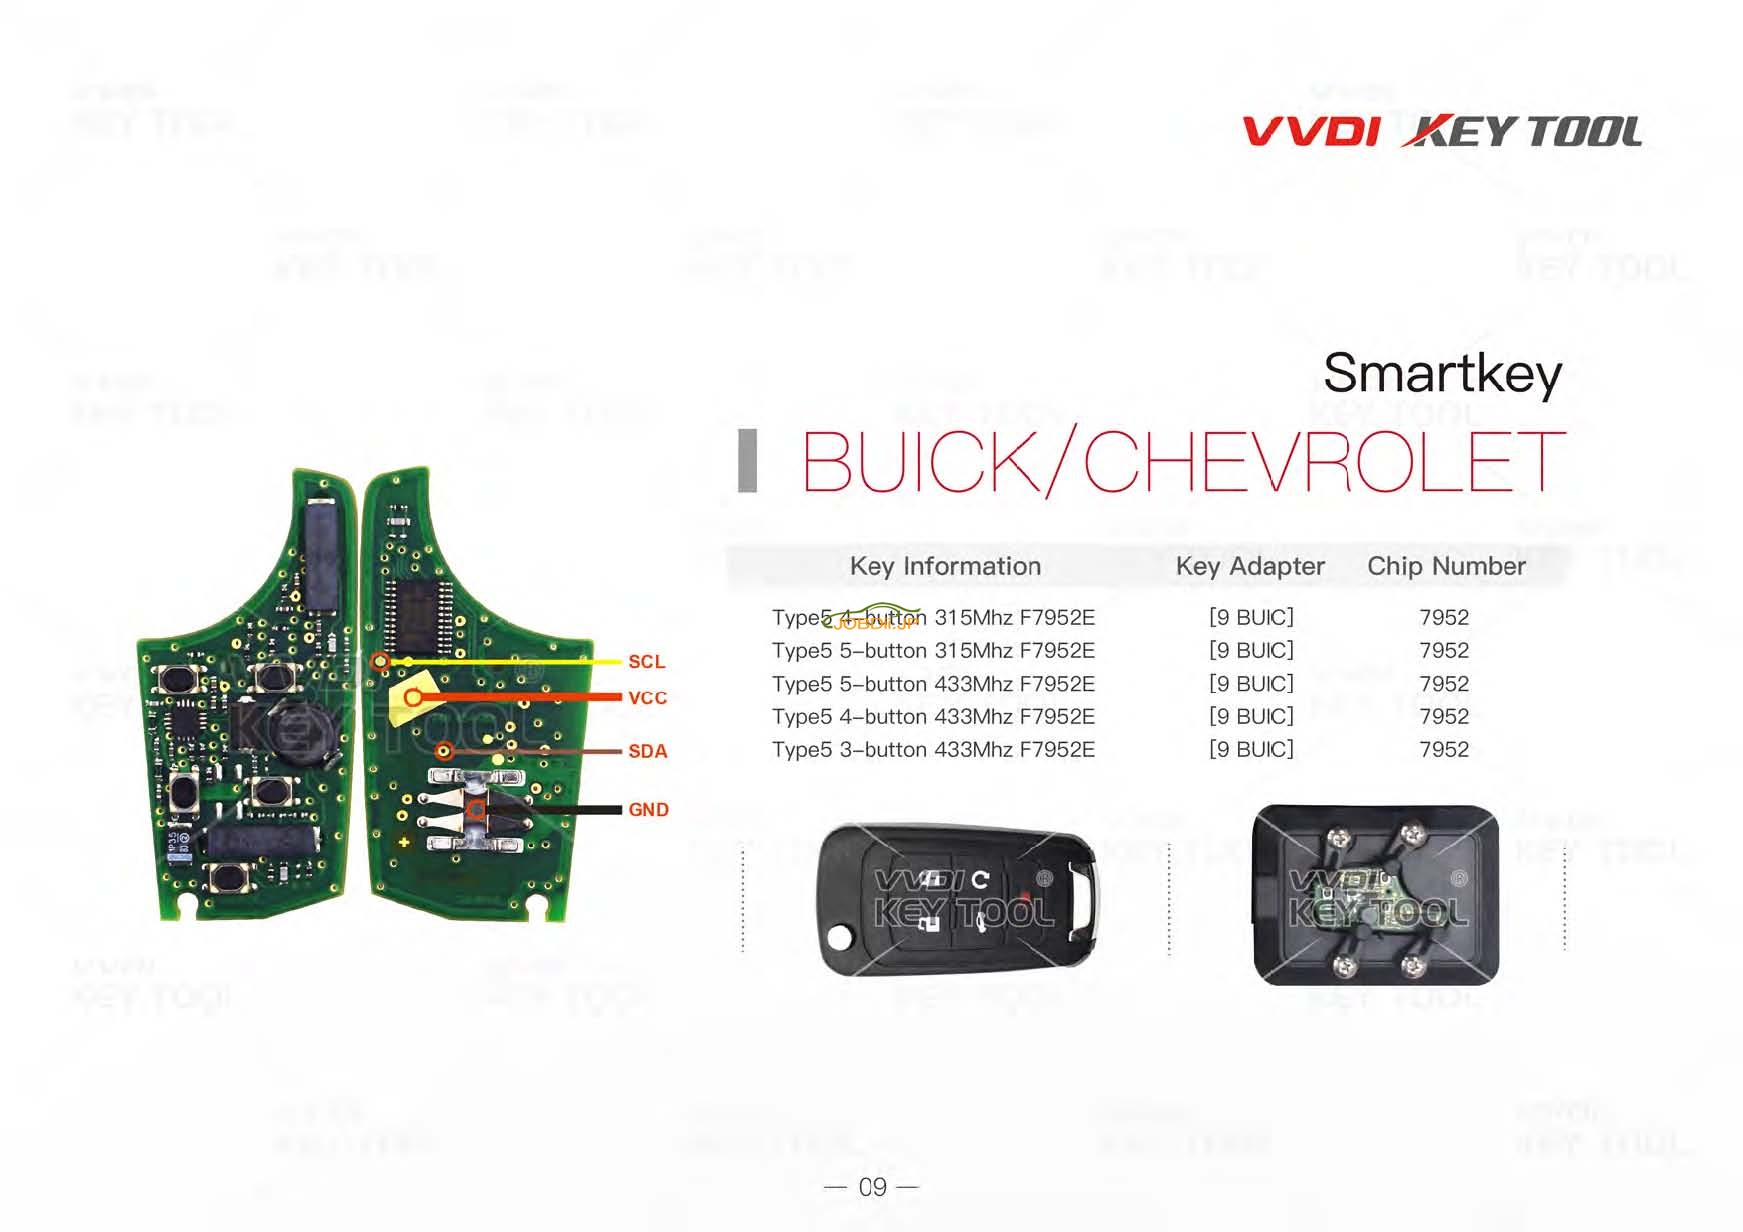 vvdi-key-tool-renew-diagram-09